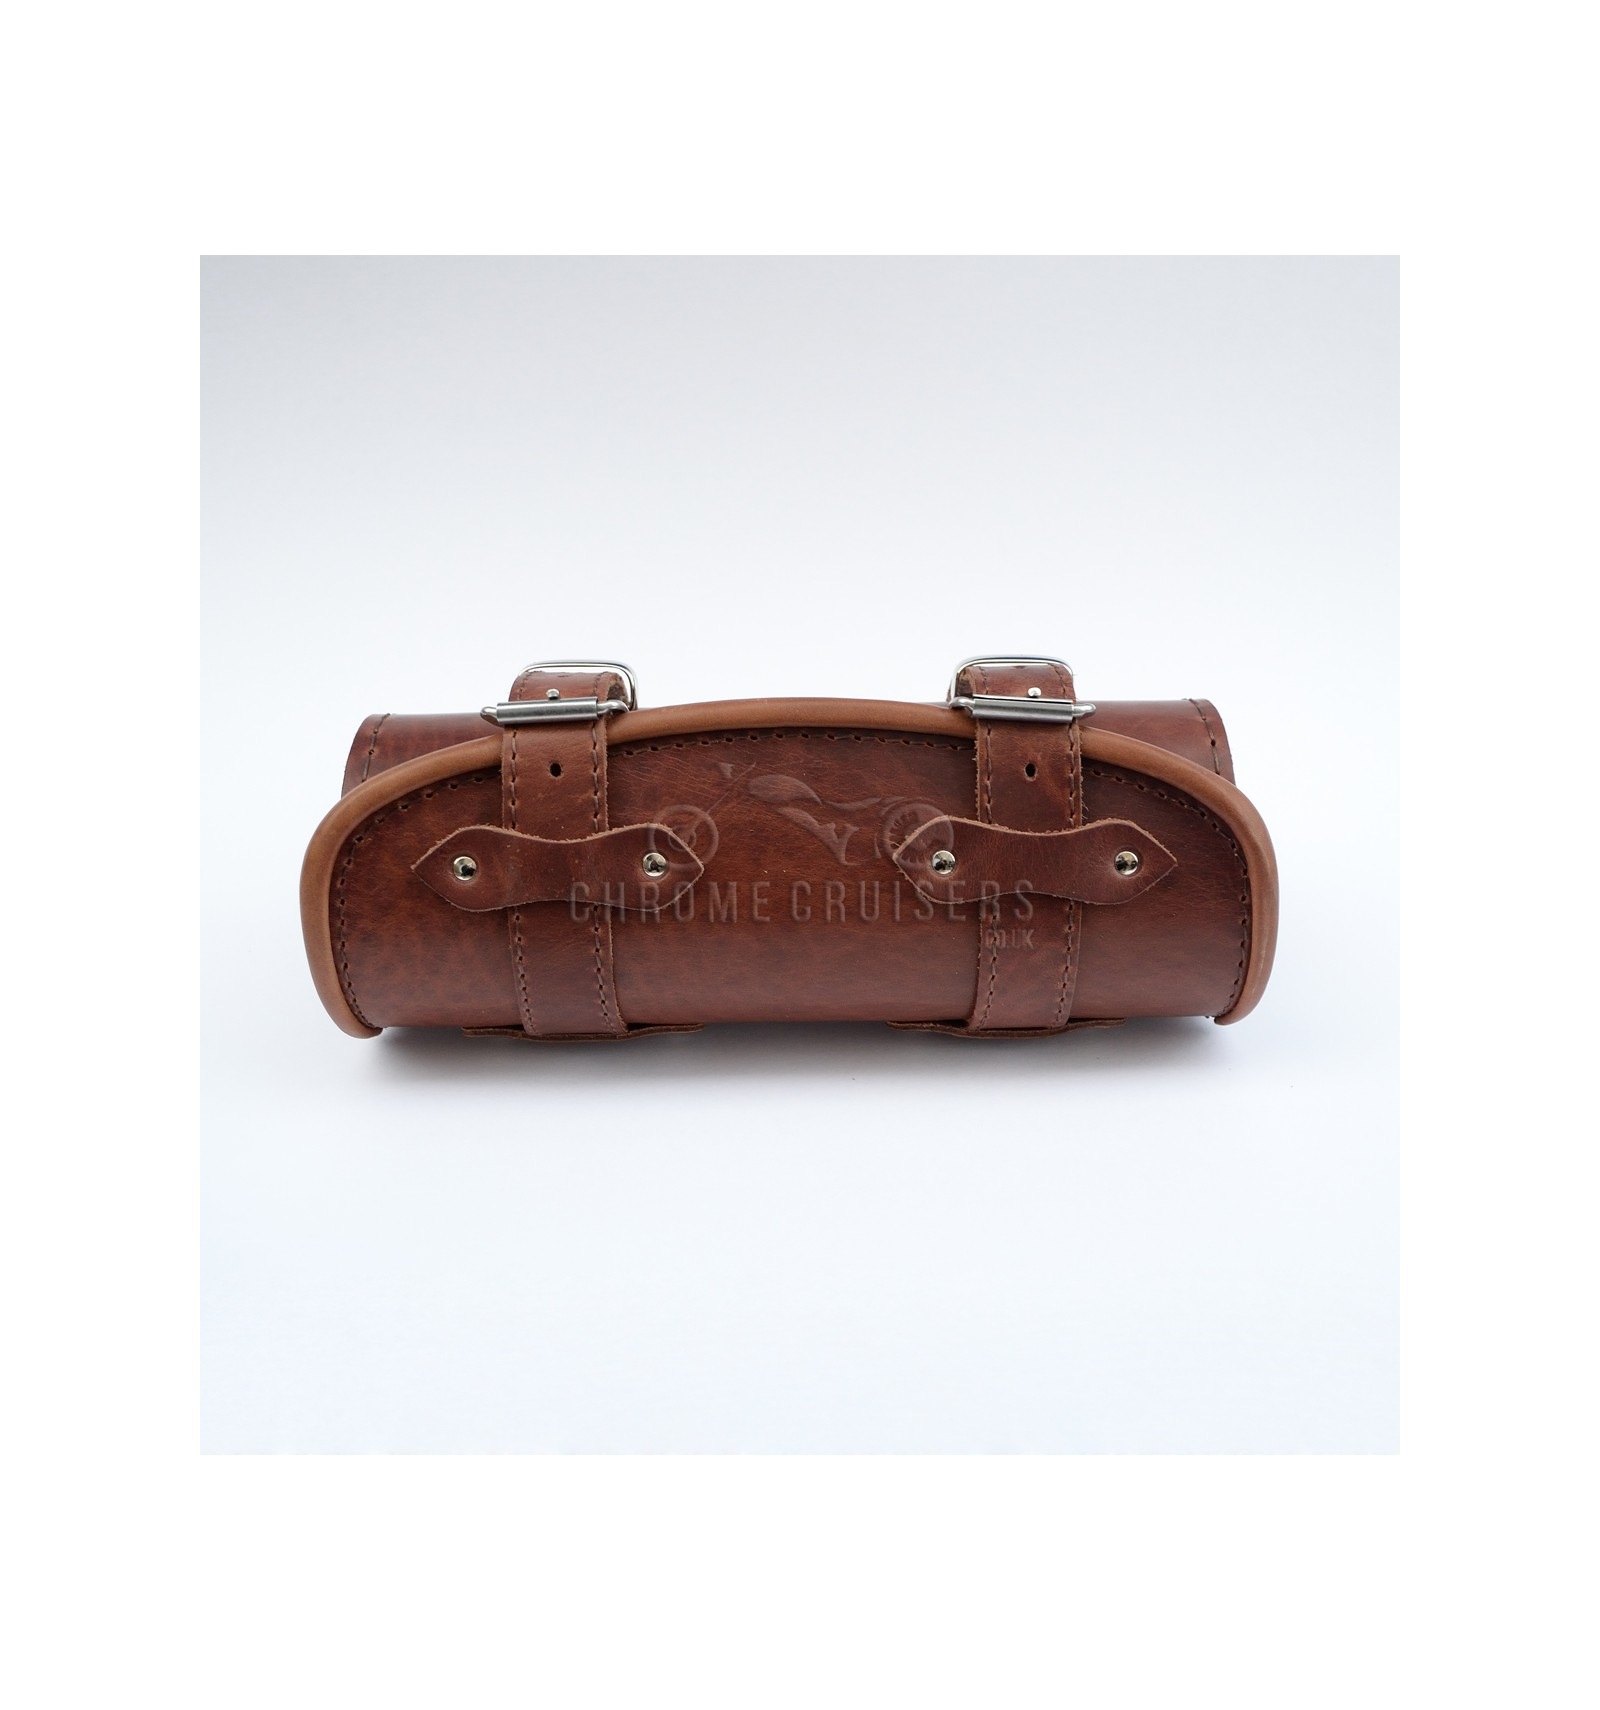 Unique Brown Leather Tool Roll Bag Pouch Chrome Cruisers